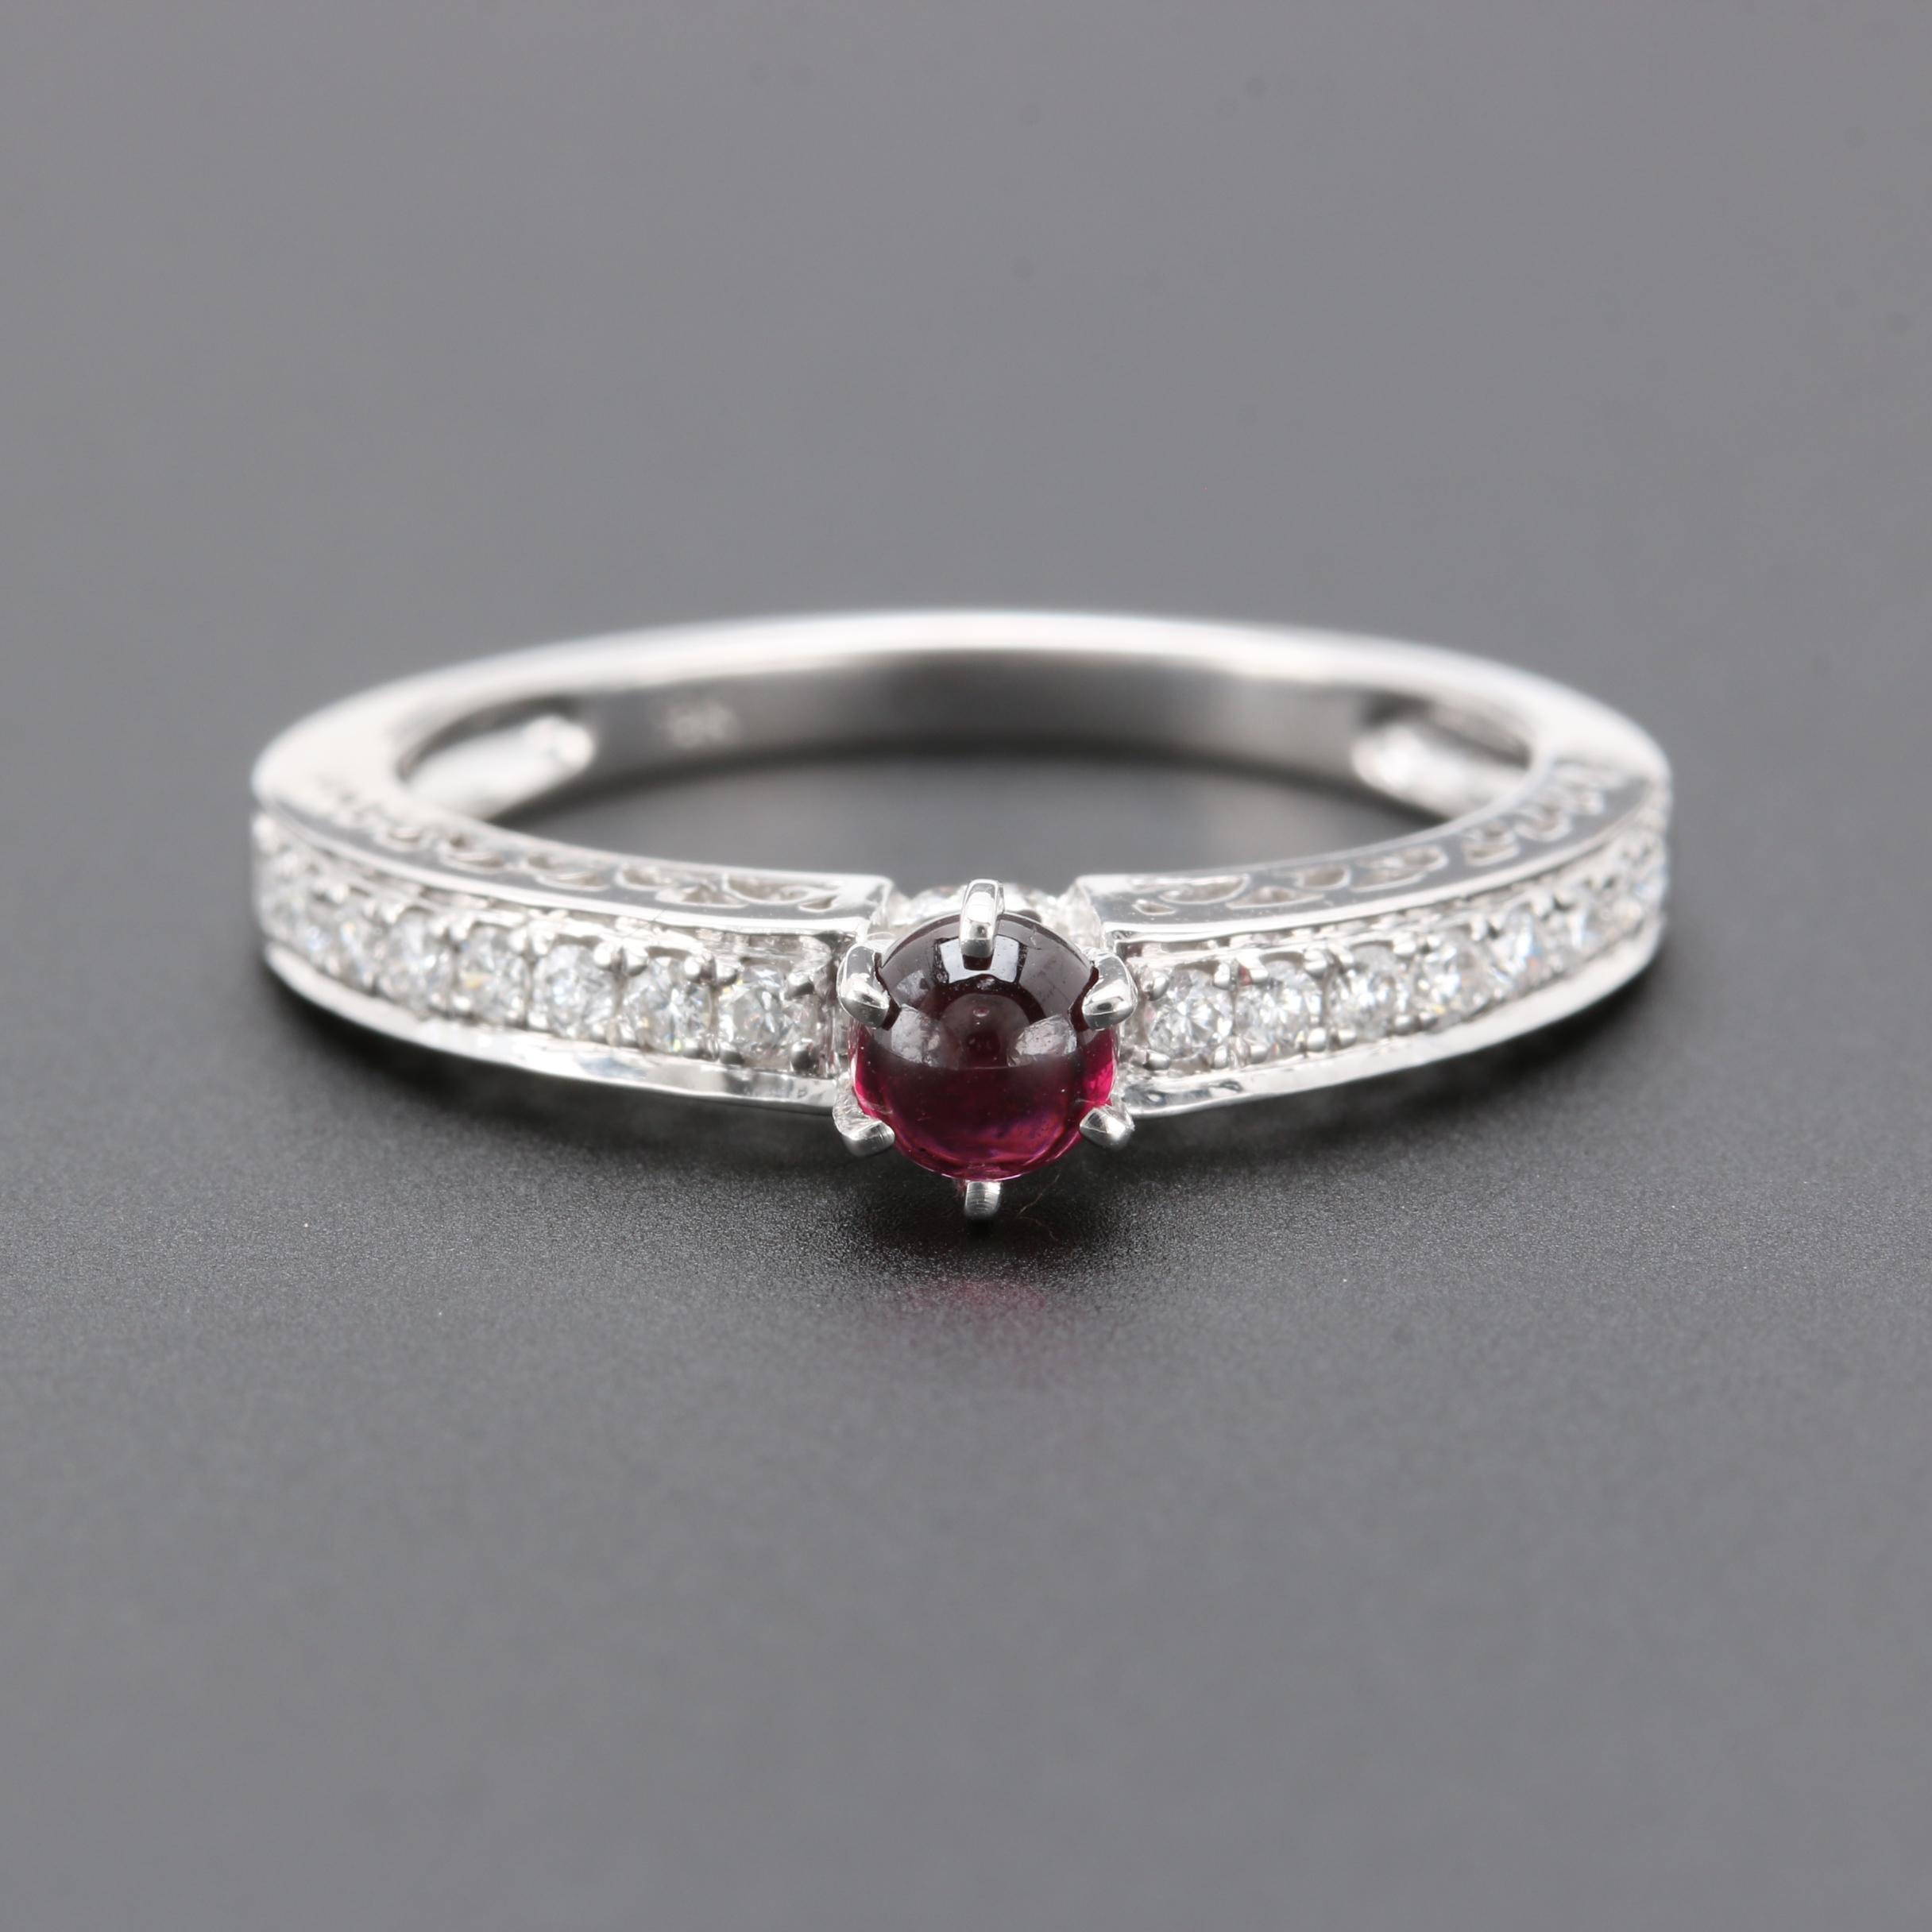 18K White Gold Rhodolite Garnet and Diamond Ring